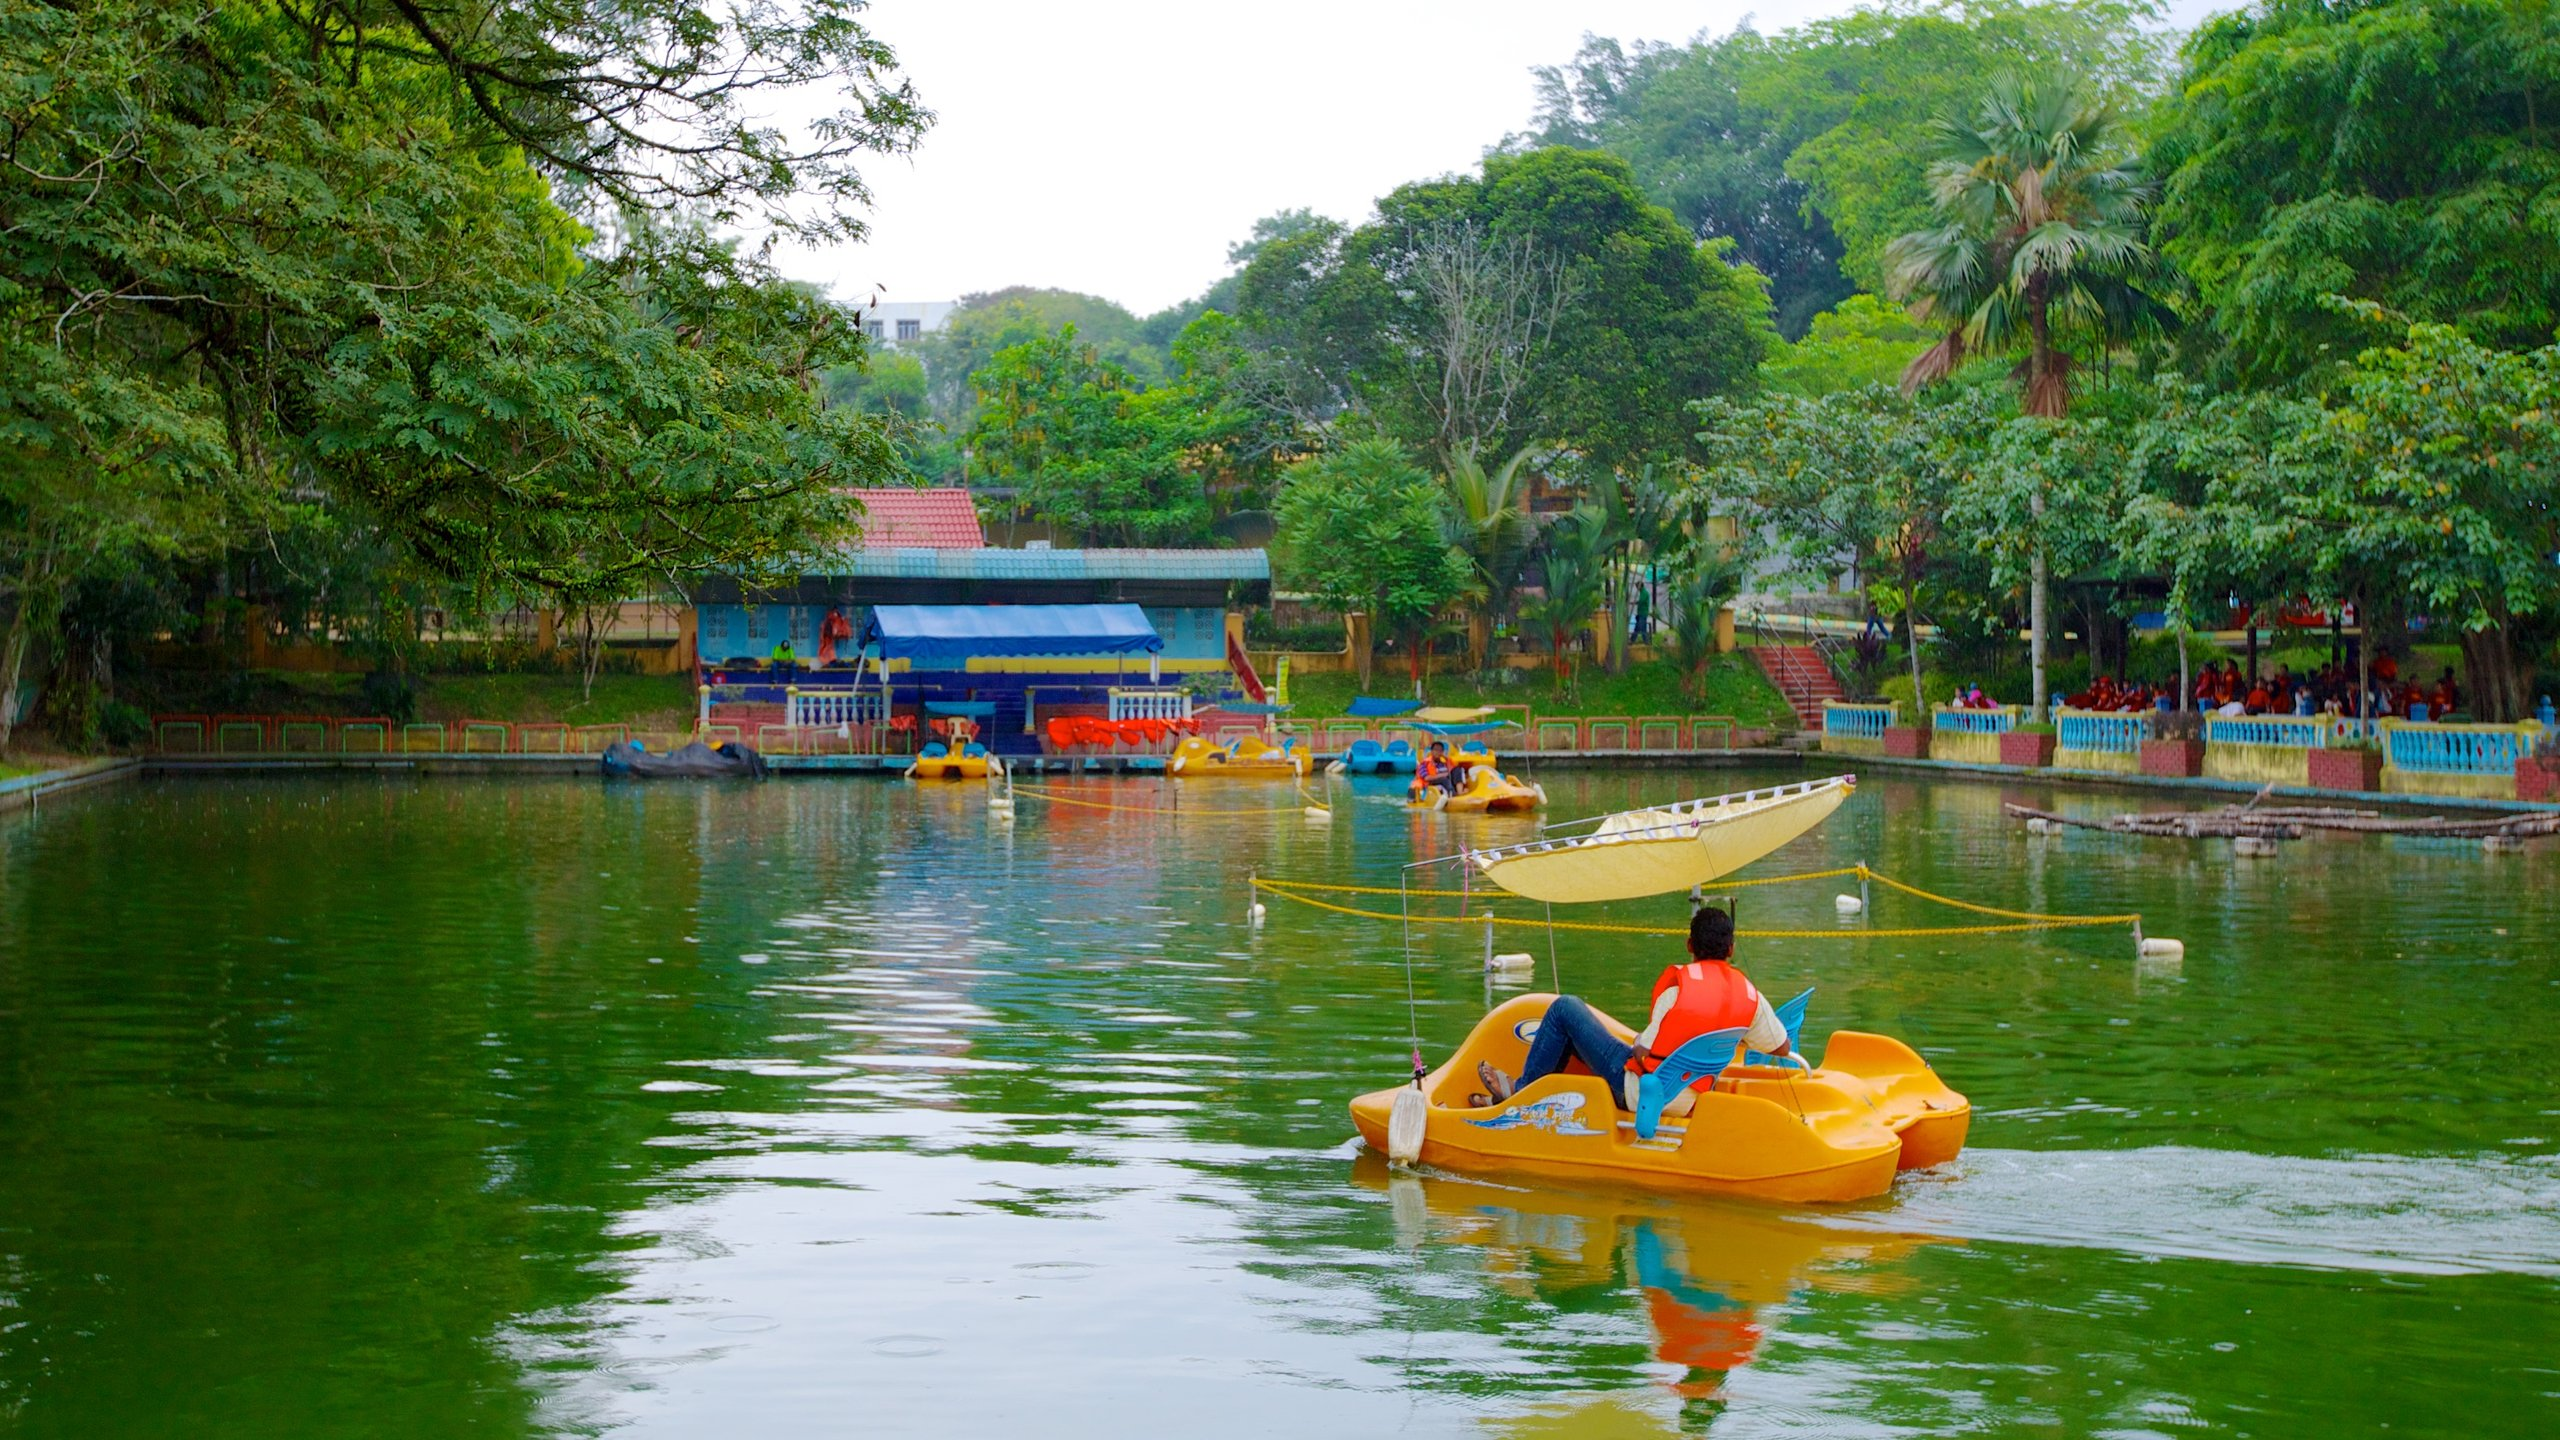 Johor Bahru which includes zoo animals, a pond and watersports